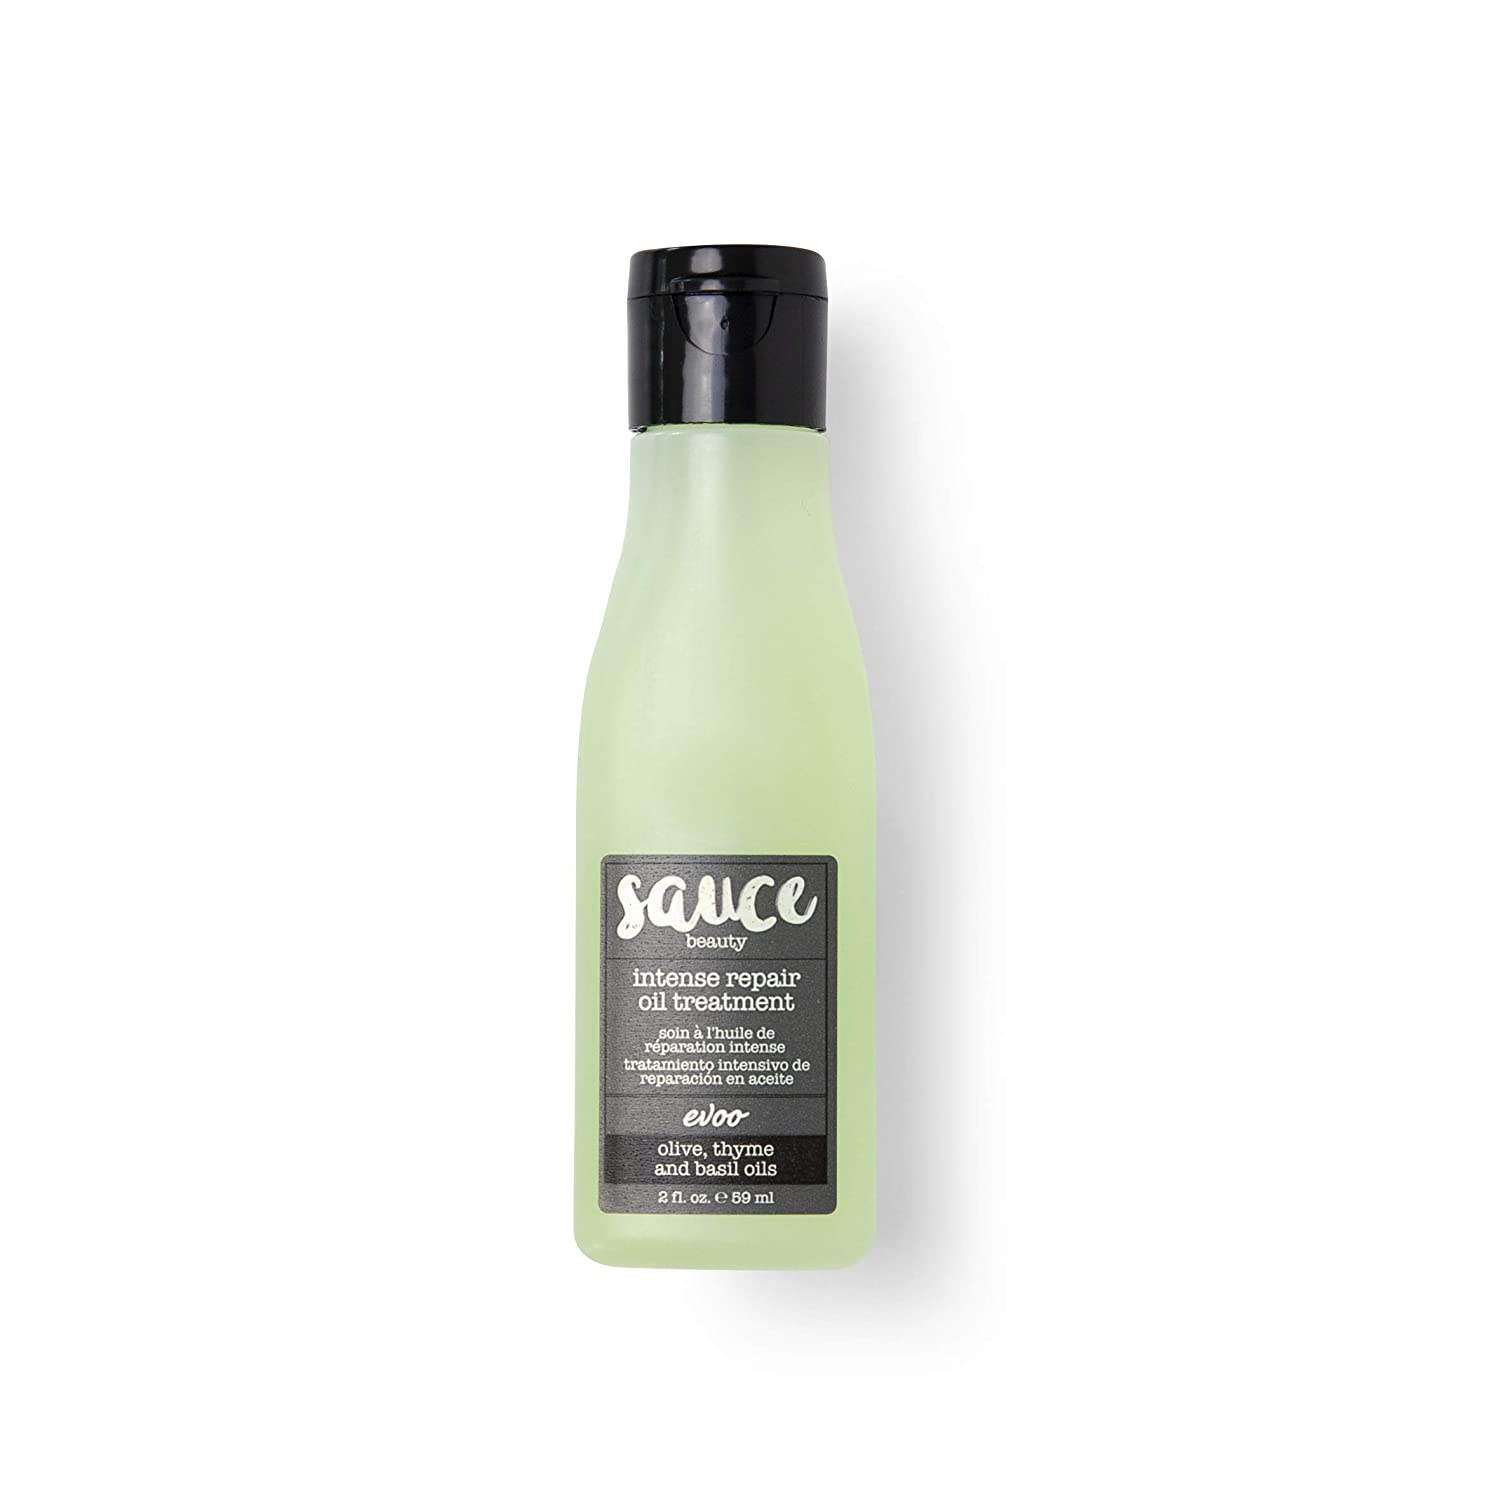 Sauce Beauty EVOO Intense Repair Hair Treatment Oil - Hair Serum Rich in Thyme and Basil Oil for Soft Texture and Frizz Control